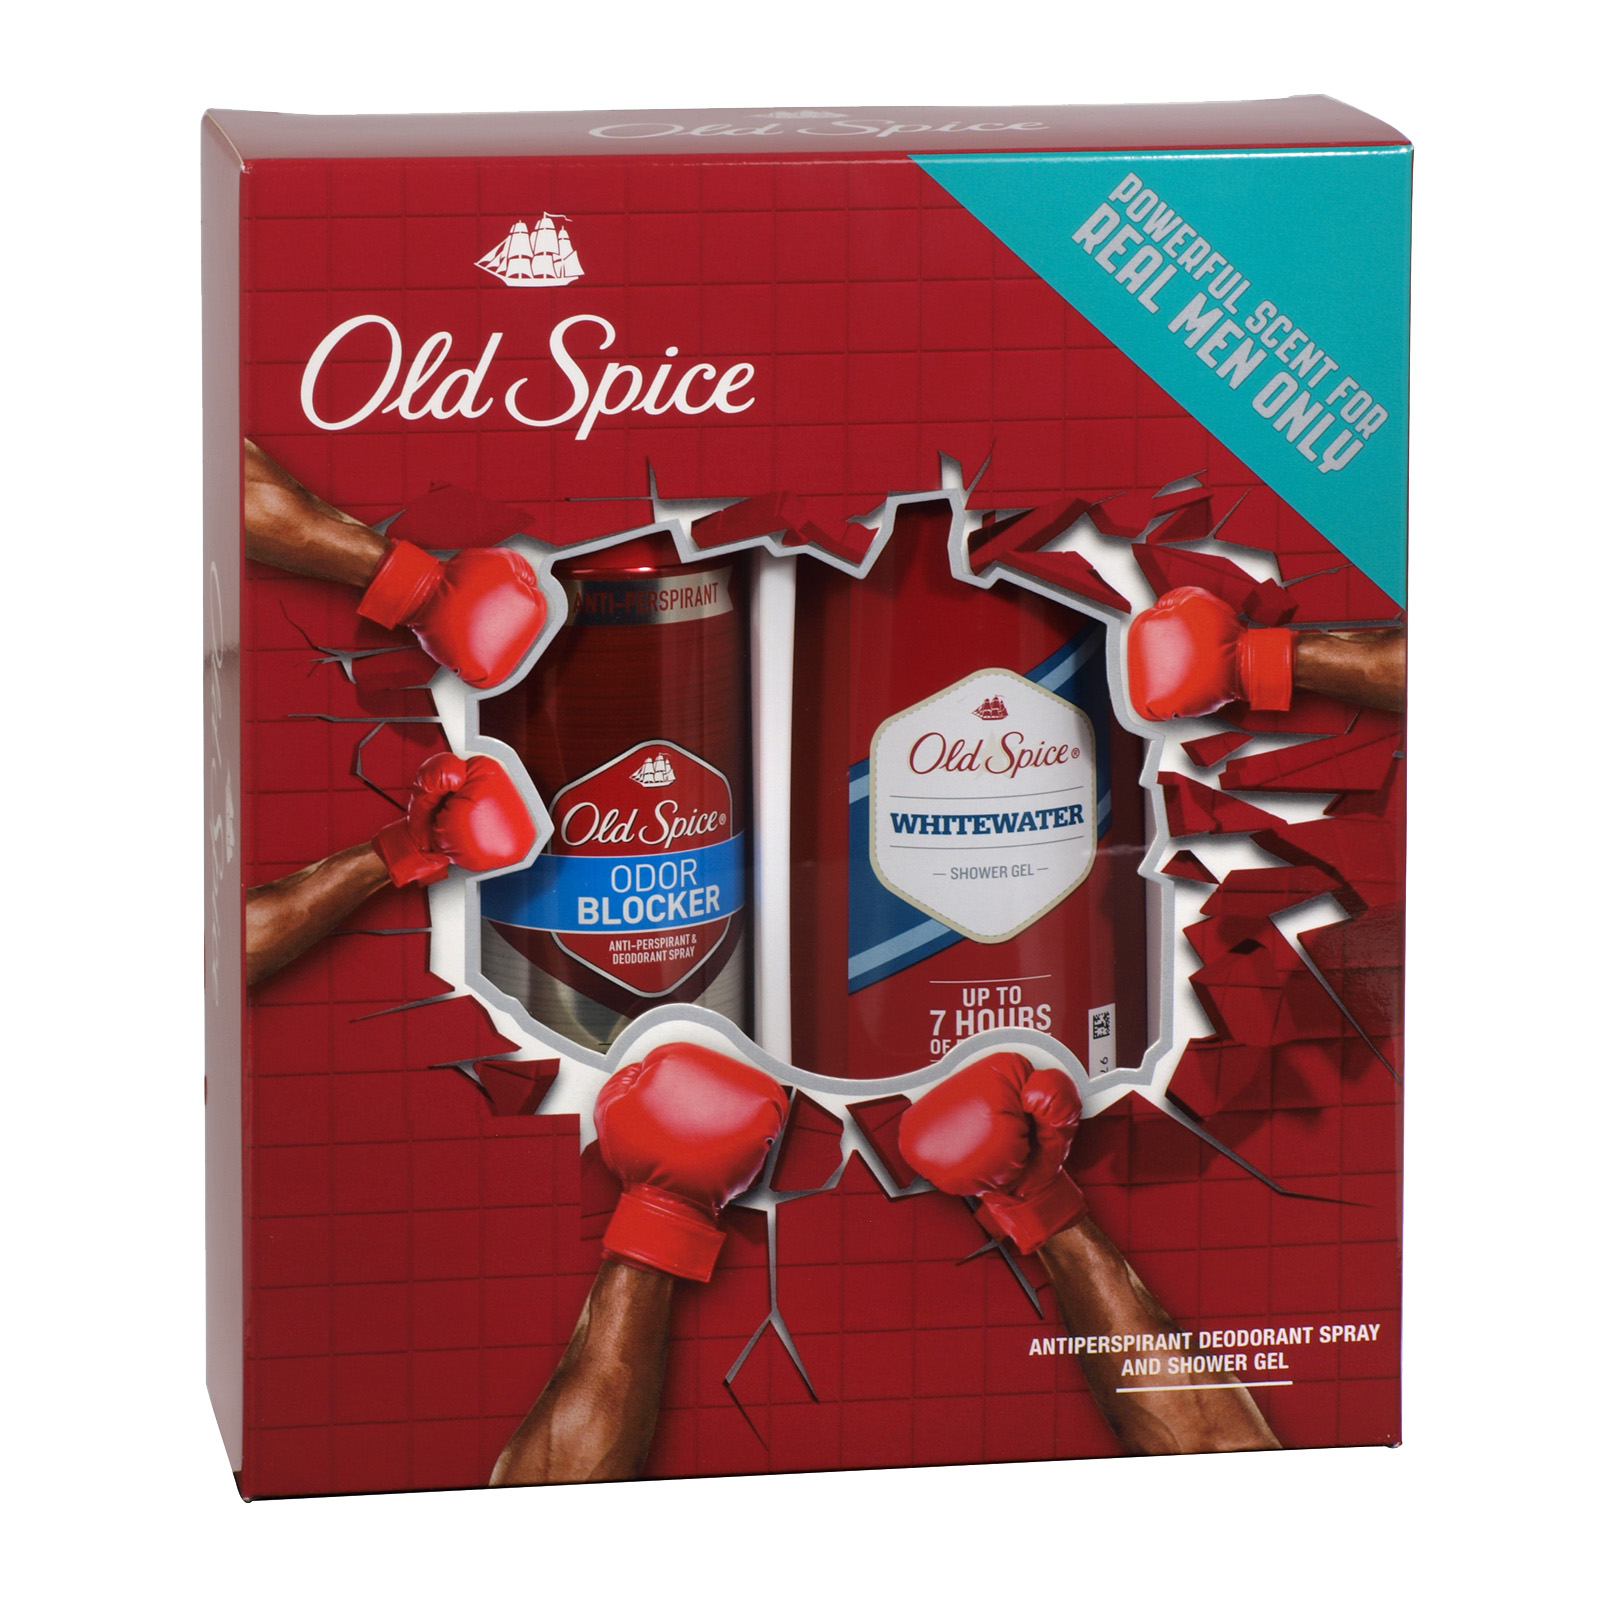 OLD SPICE BODY SPRAY+SHOWER GEL WHITEWATER